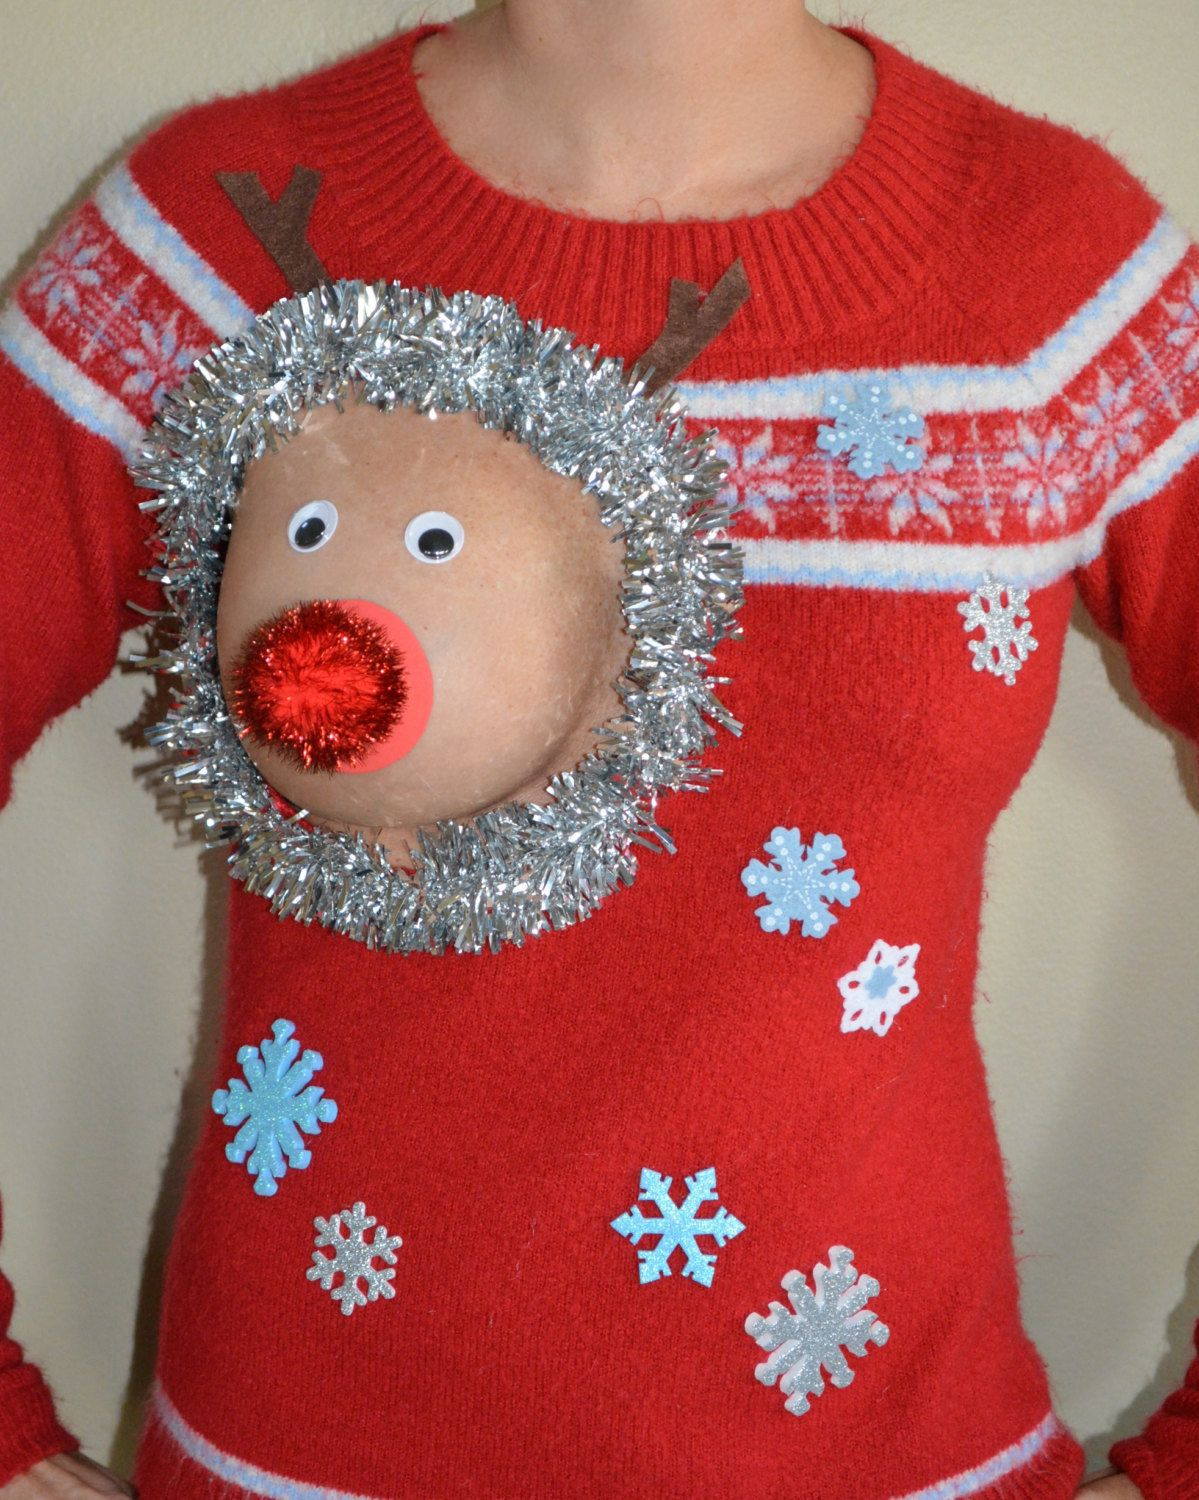 The Perfect Ugly Christmas Sweater For Breastfeeding Moms | HuffPost